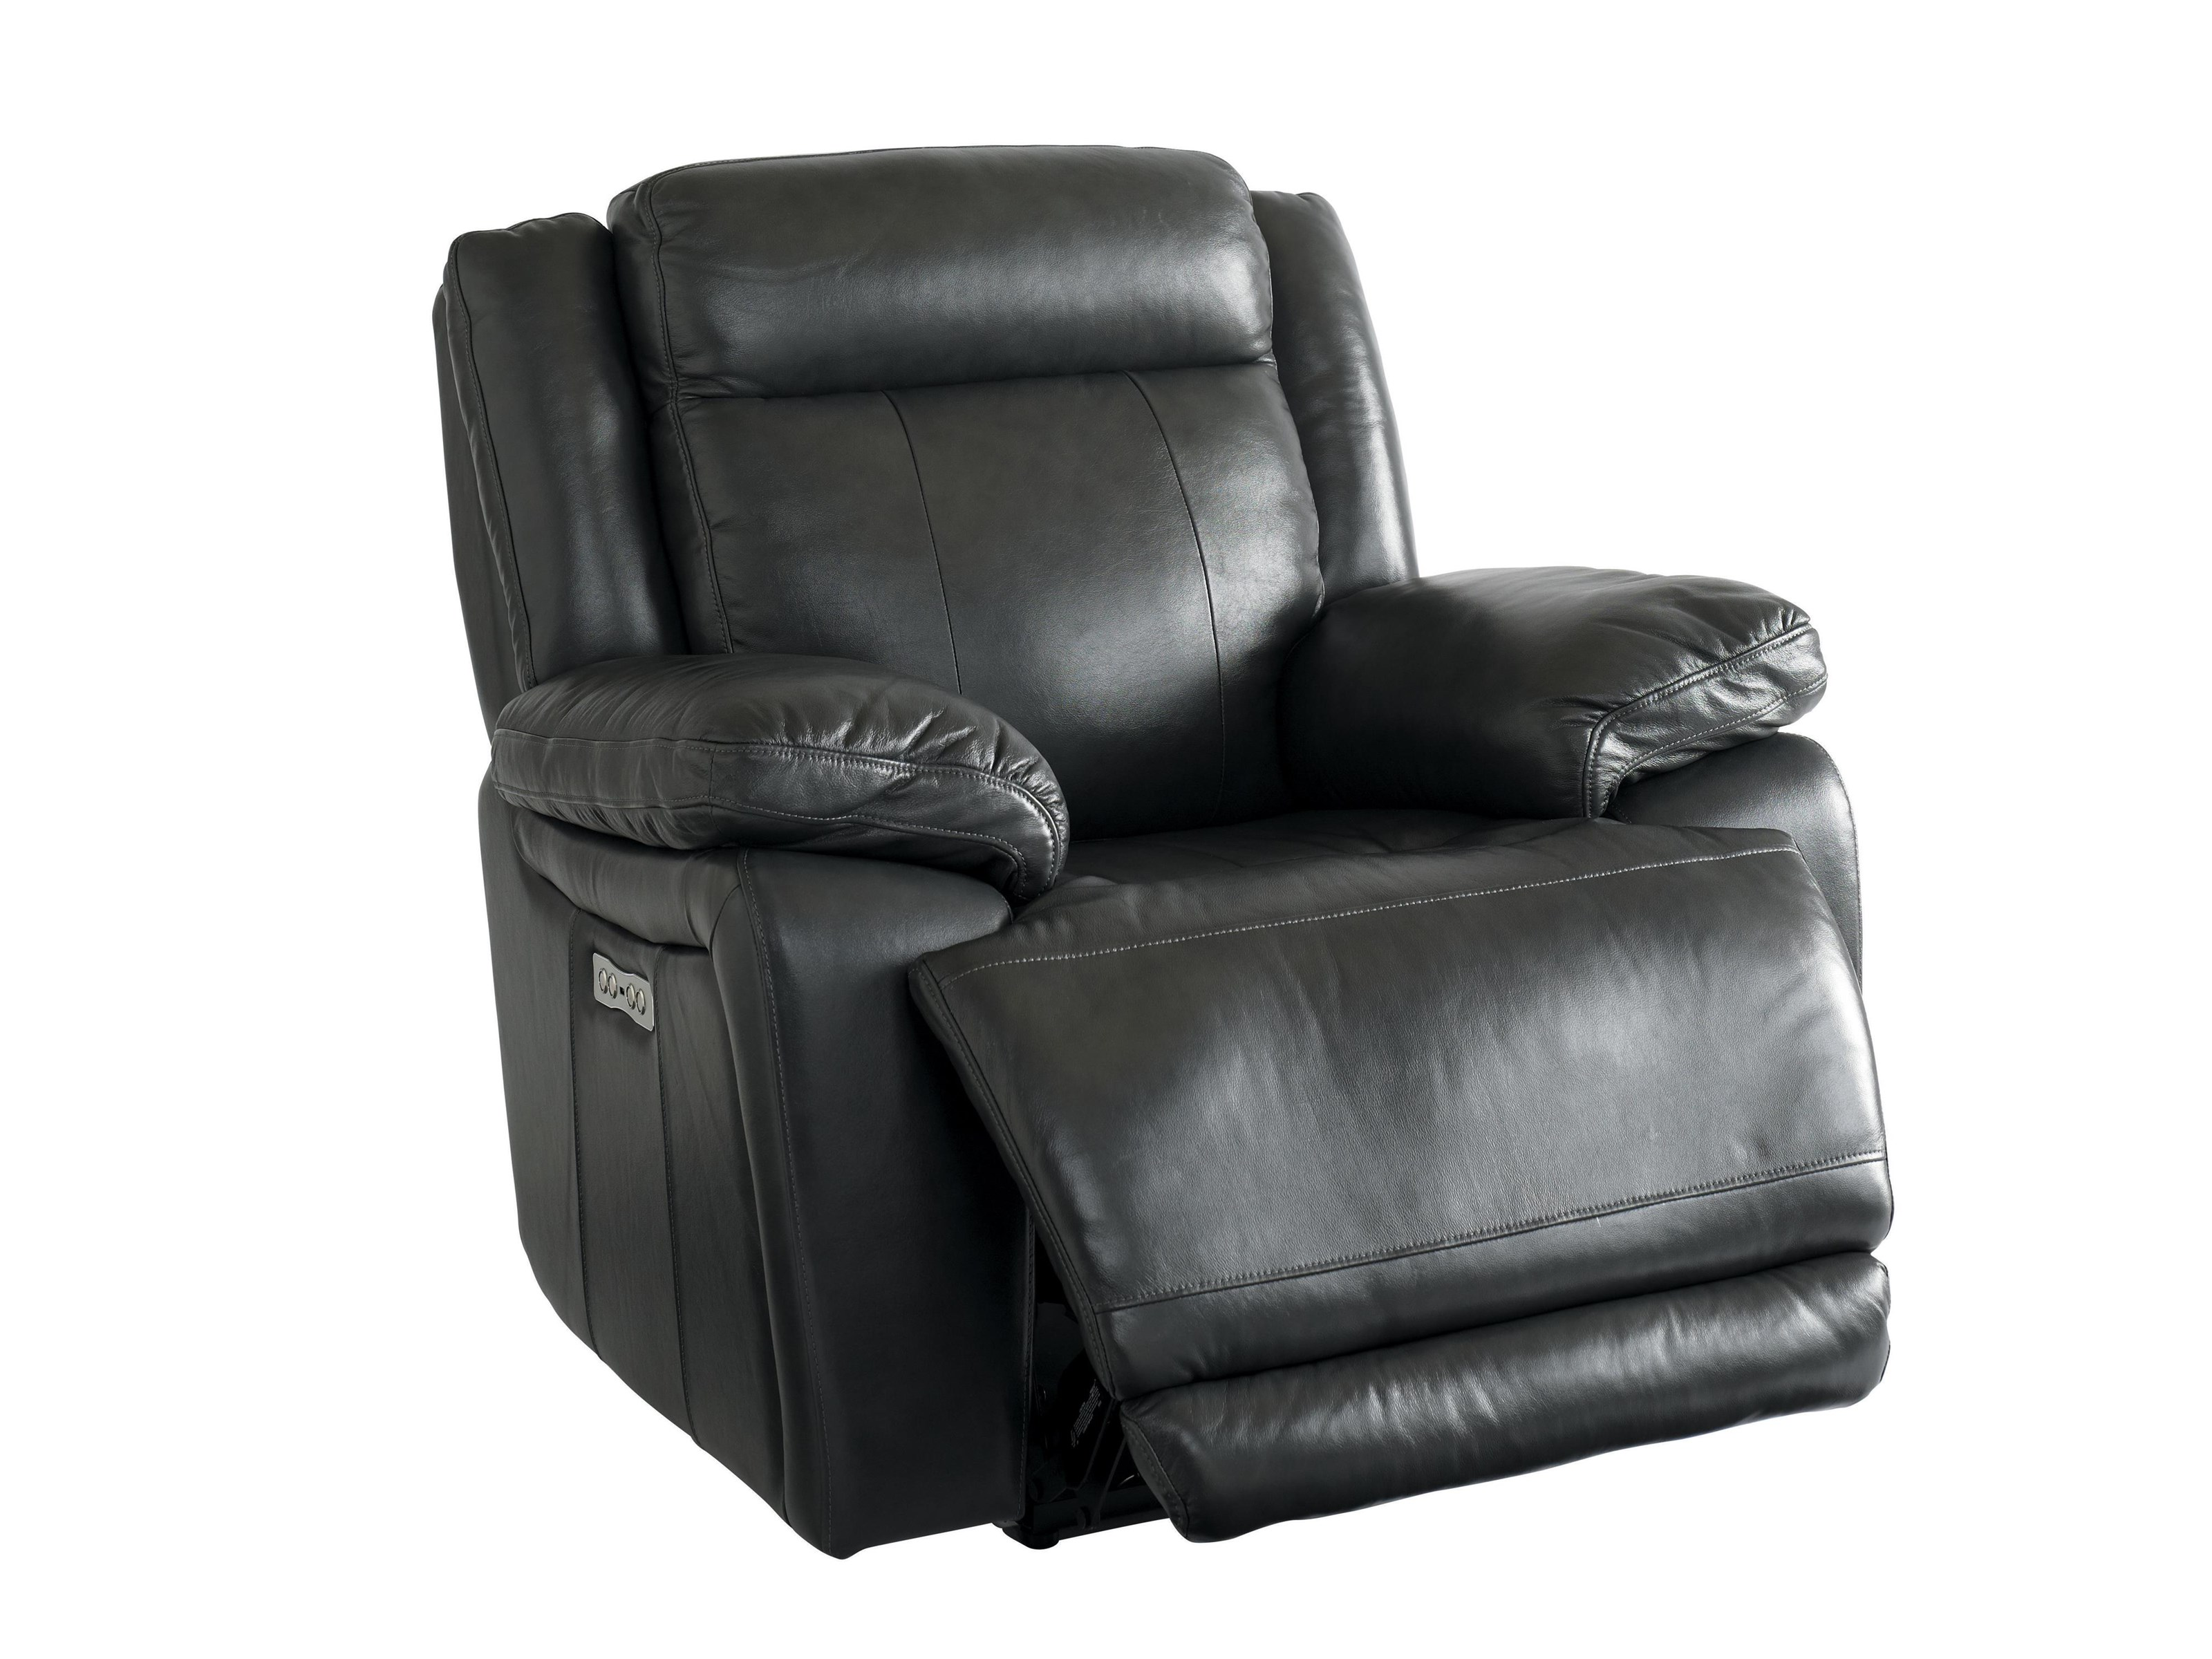 Bassett Club Level Evo Leather Recliner w/Pwr Head u0026 Foot - Item Number  sc 1 st  Great American Home Store & Bassett Club Level Evo Graphite Leather Power Recliner with Power ... islam-shia.org